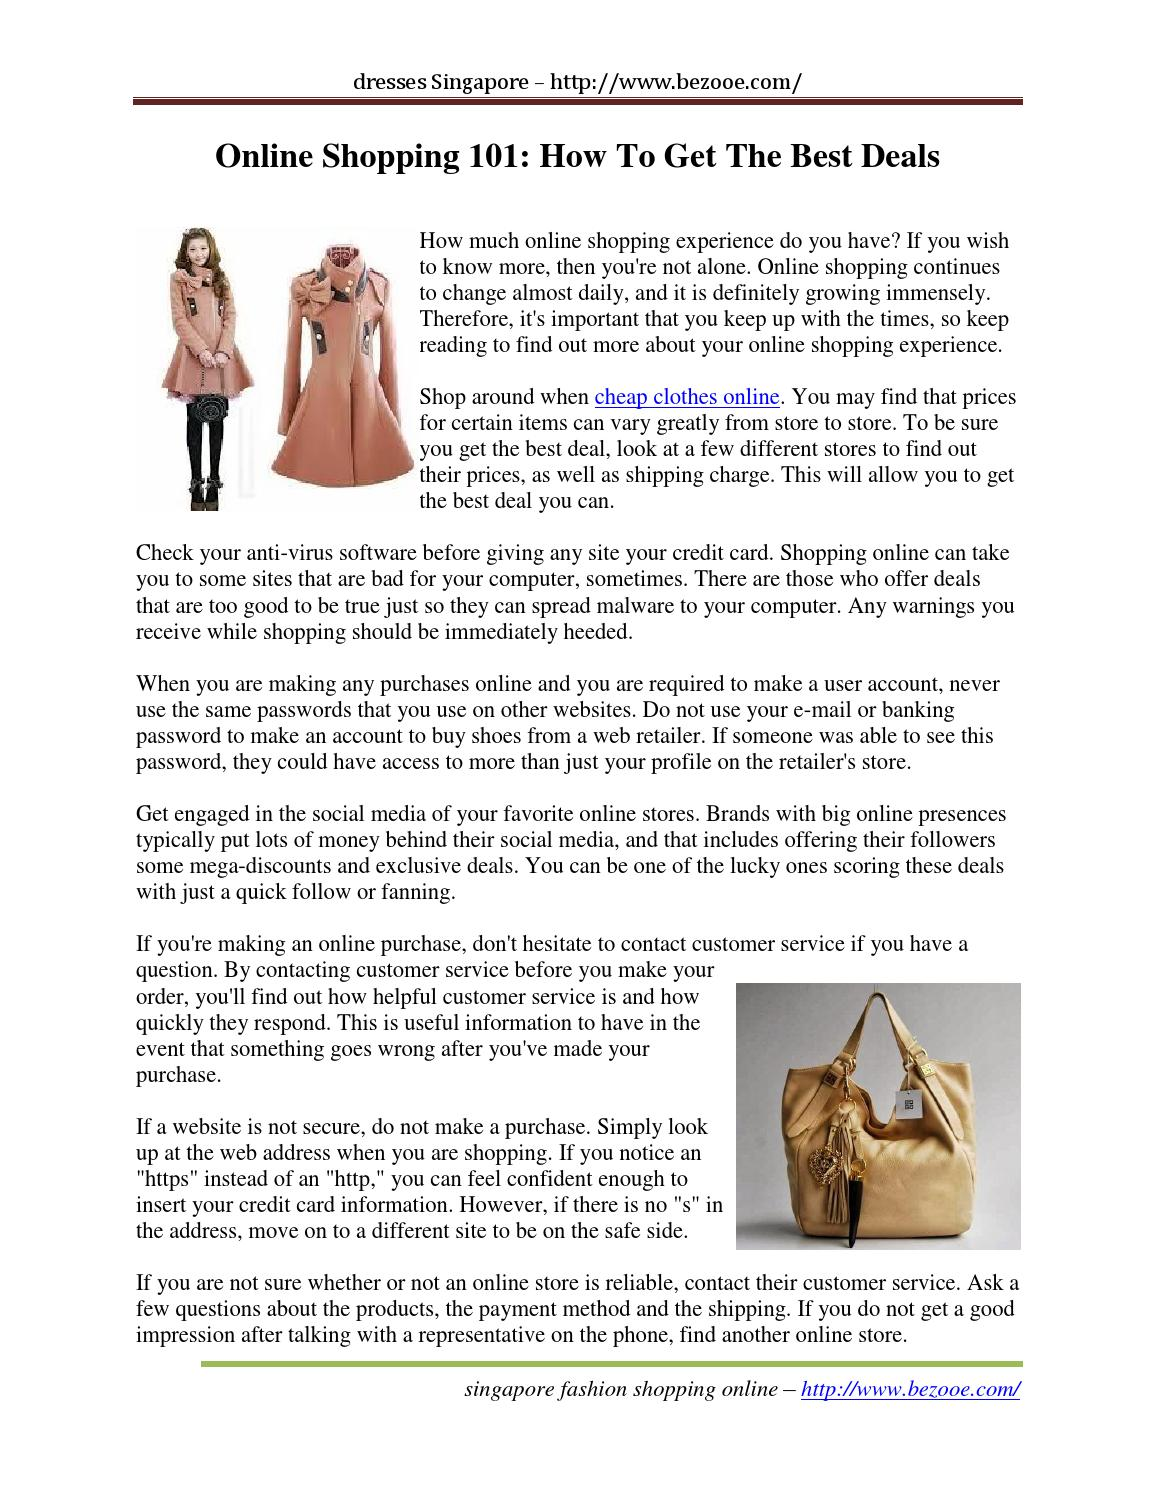 83a6d5e5db4 Online shopping 101 how to get the best deals by LissetteKohnke - issuu